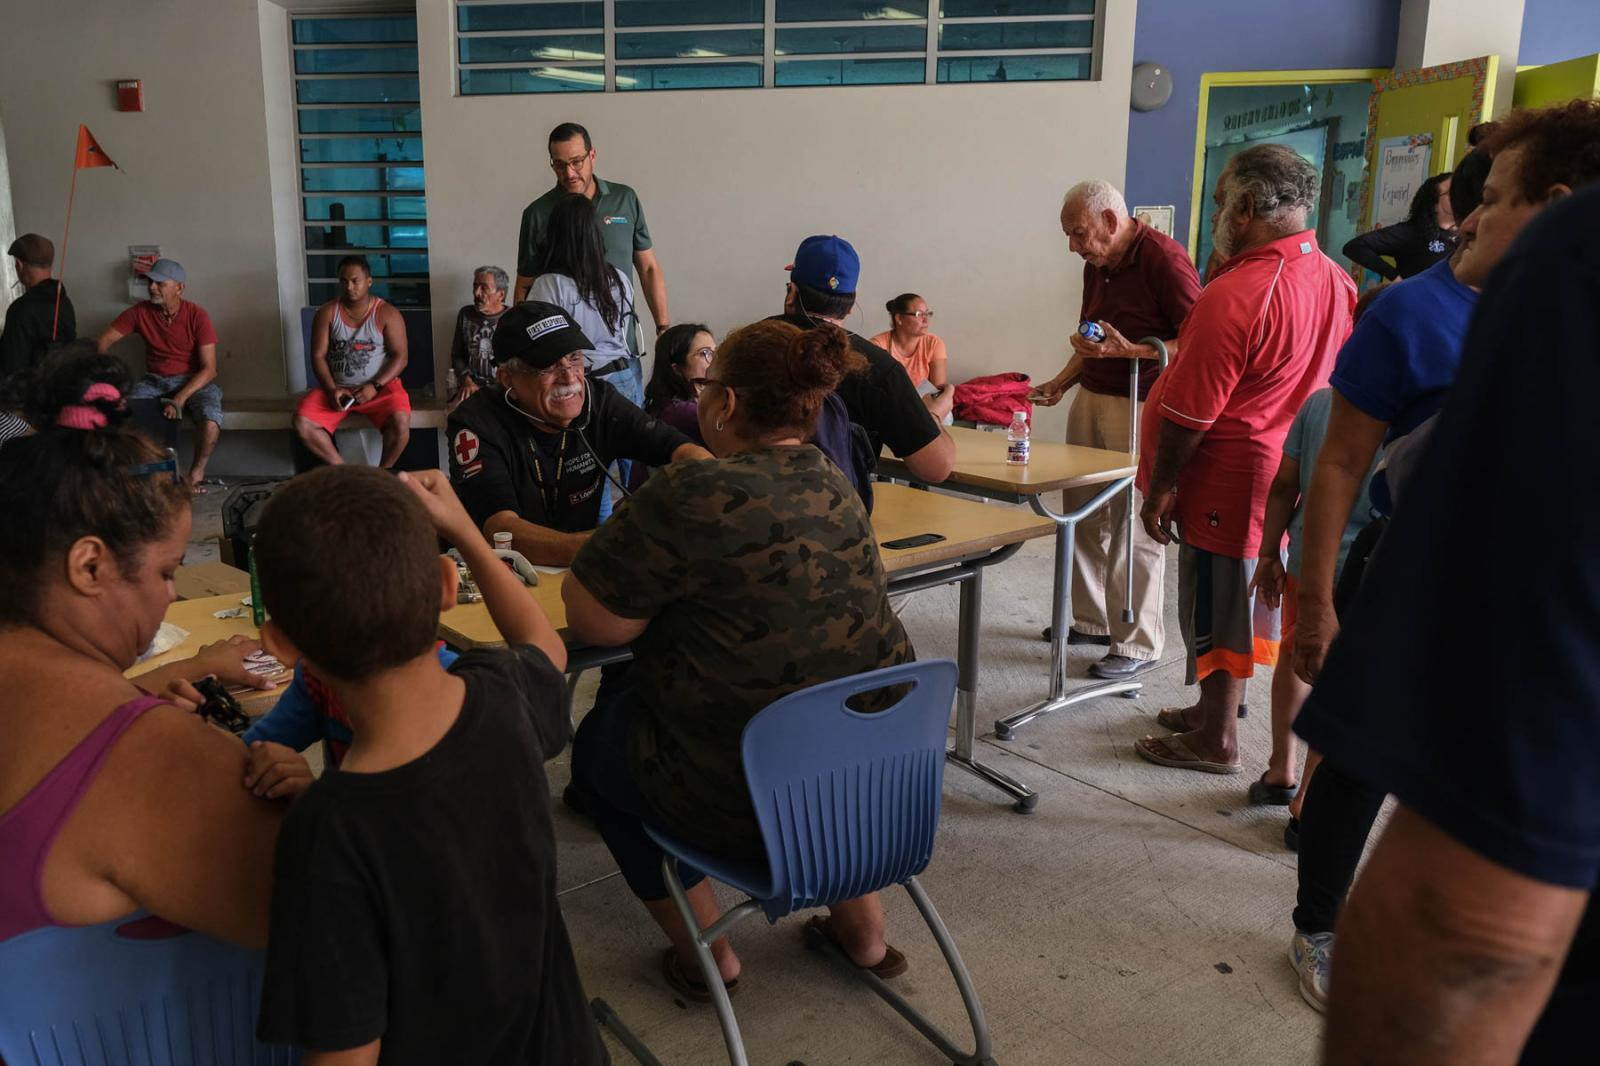 On the morning of January 7th, 2020, two earthquakes of 6.6 and 6.0 were reported in the southwestern region of Puerto Rico producing an island-wide blackout. Doctors and nurses attend the population of refugees in the Escuela Superior Bernardino Cordero Bernard. Gabriella N. Báez for CNN.